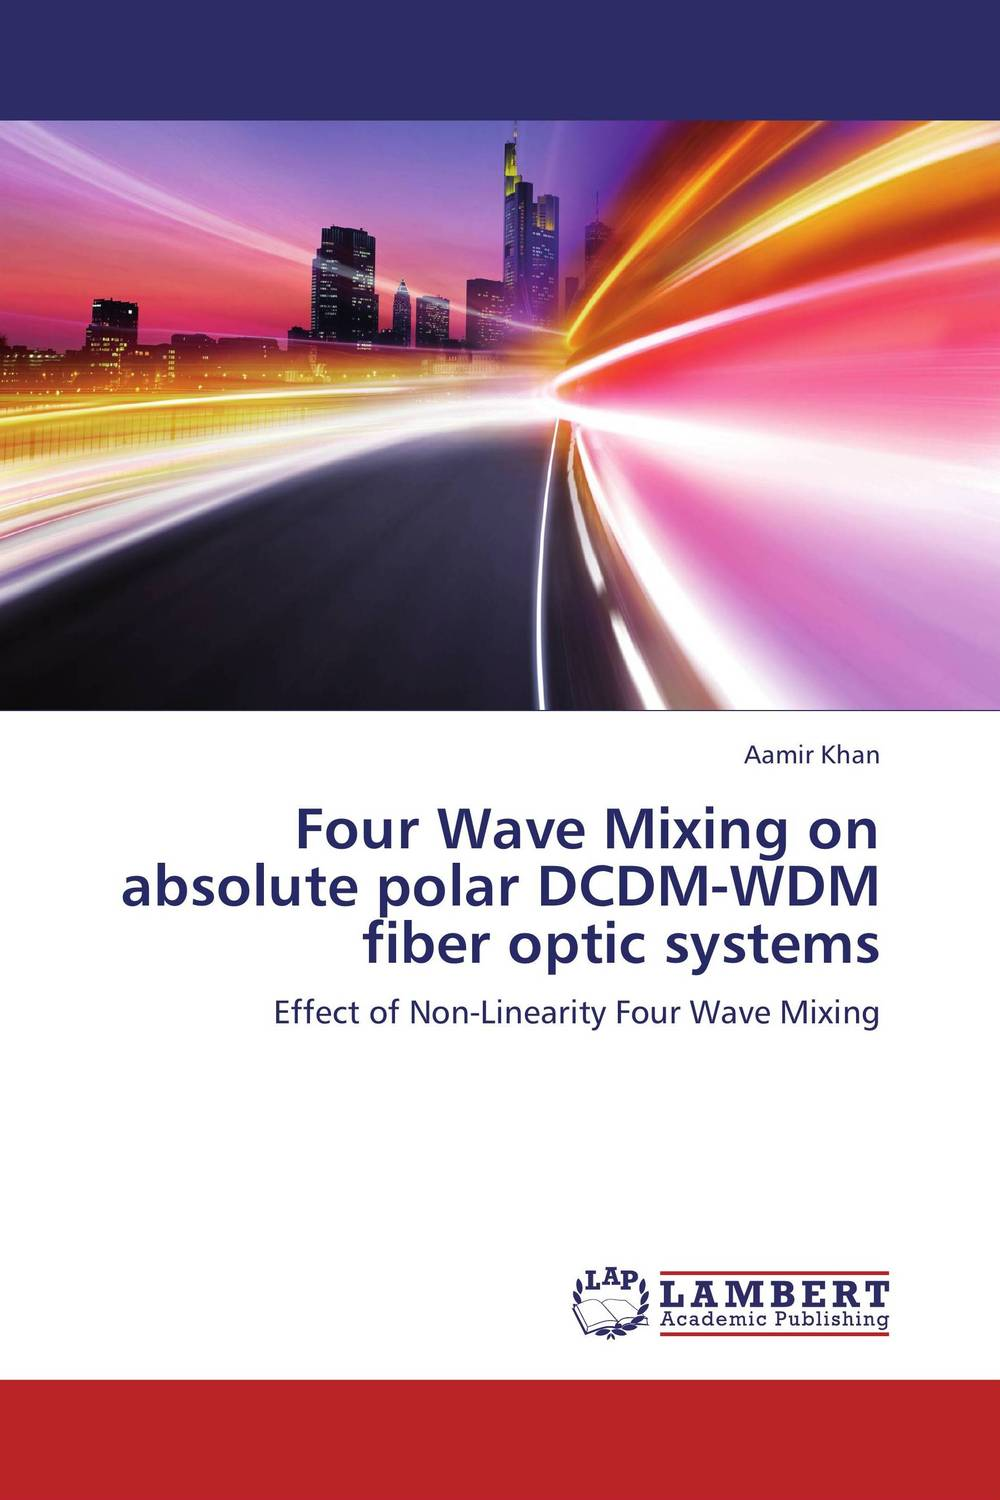 Four Wave Mixing on absolute polar DCDM-WDM fiber optic systems optical fiber transmission systems based on mode division multiplexing